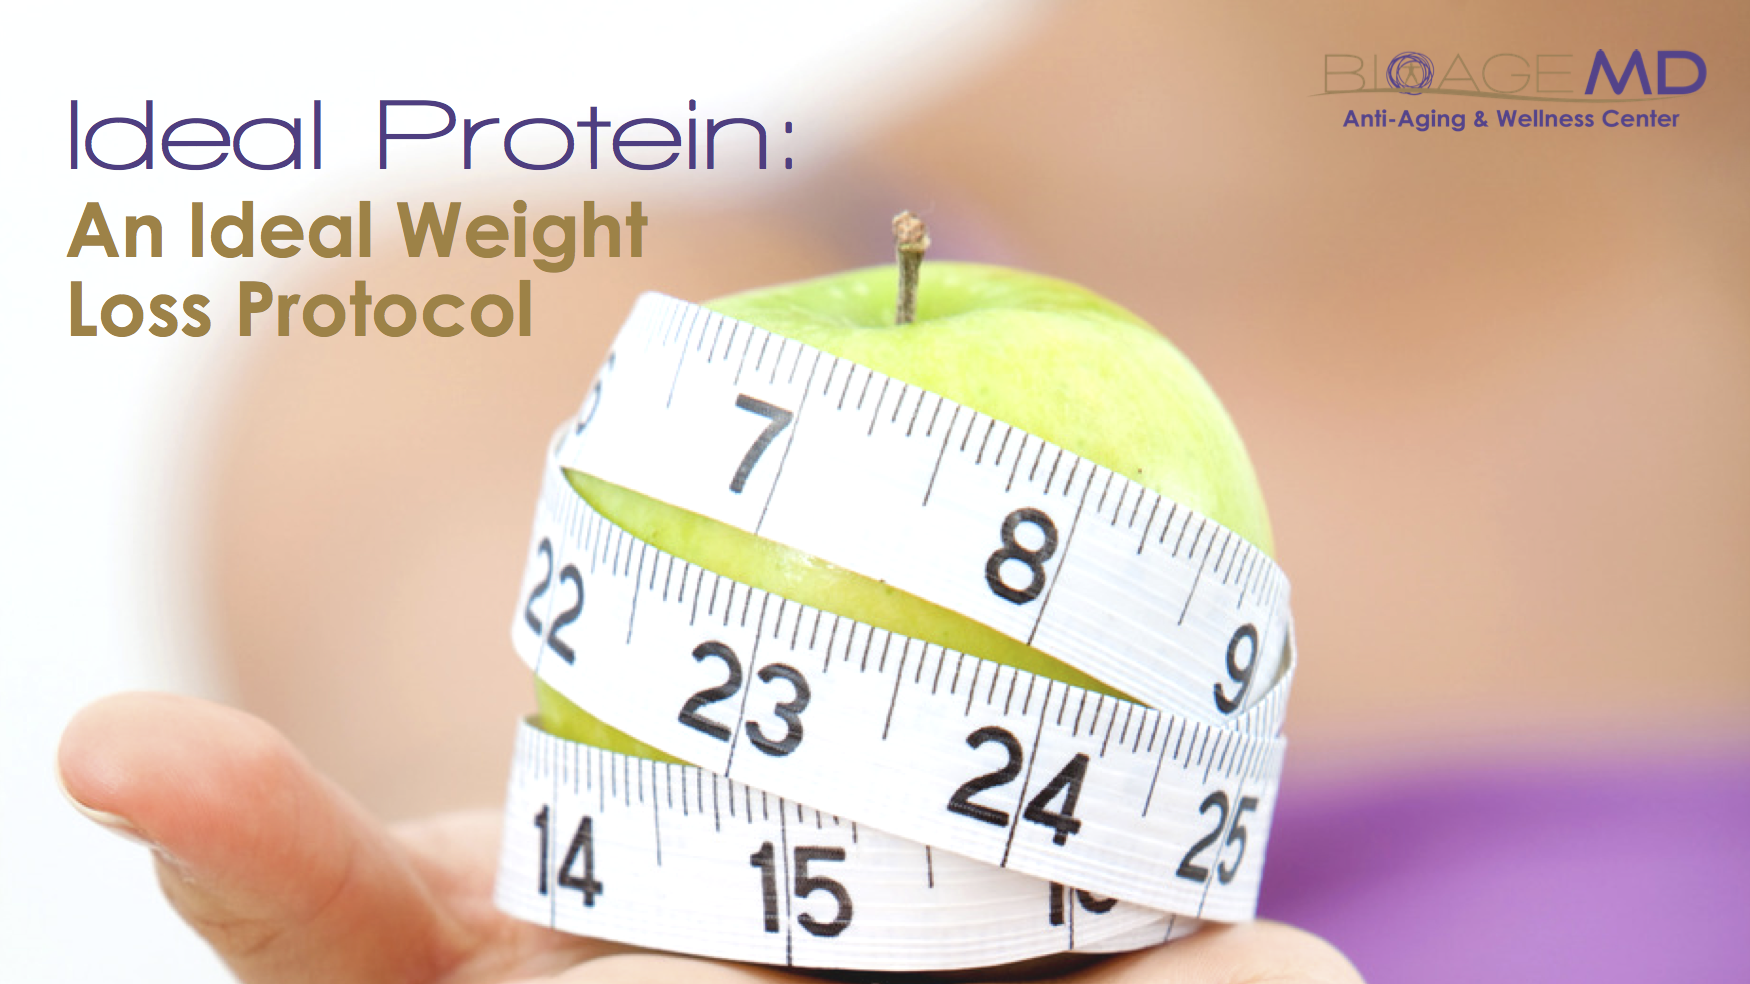 Ideal Protein - An Ideal Weight Loss Protocol